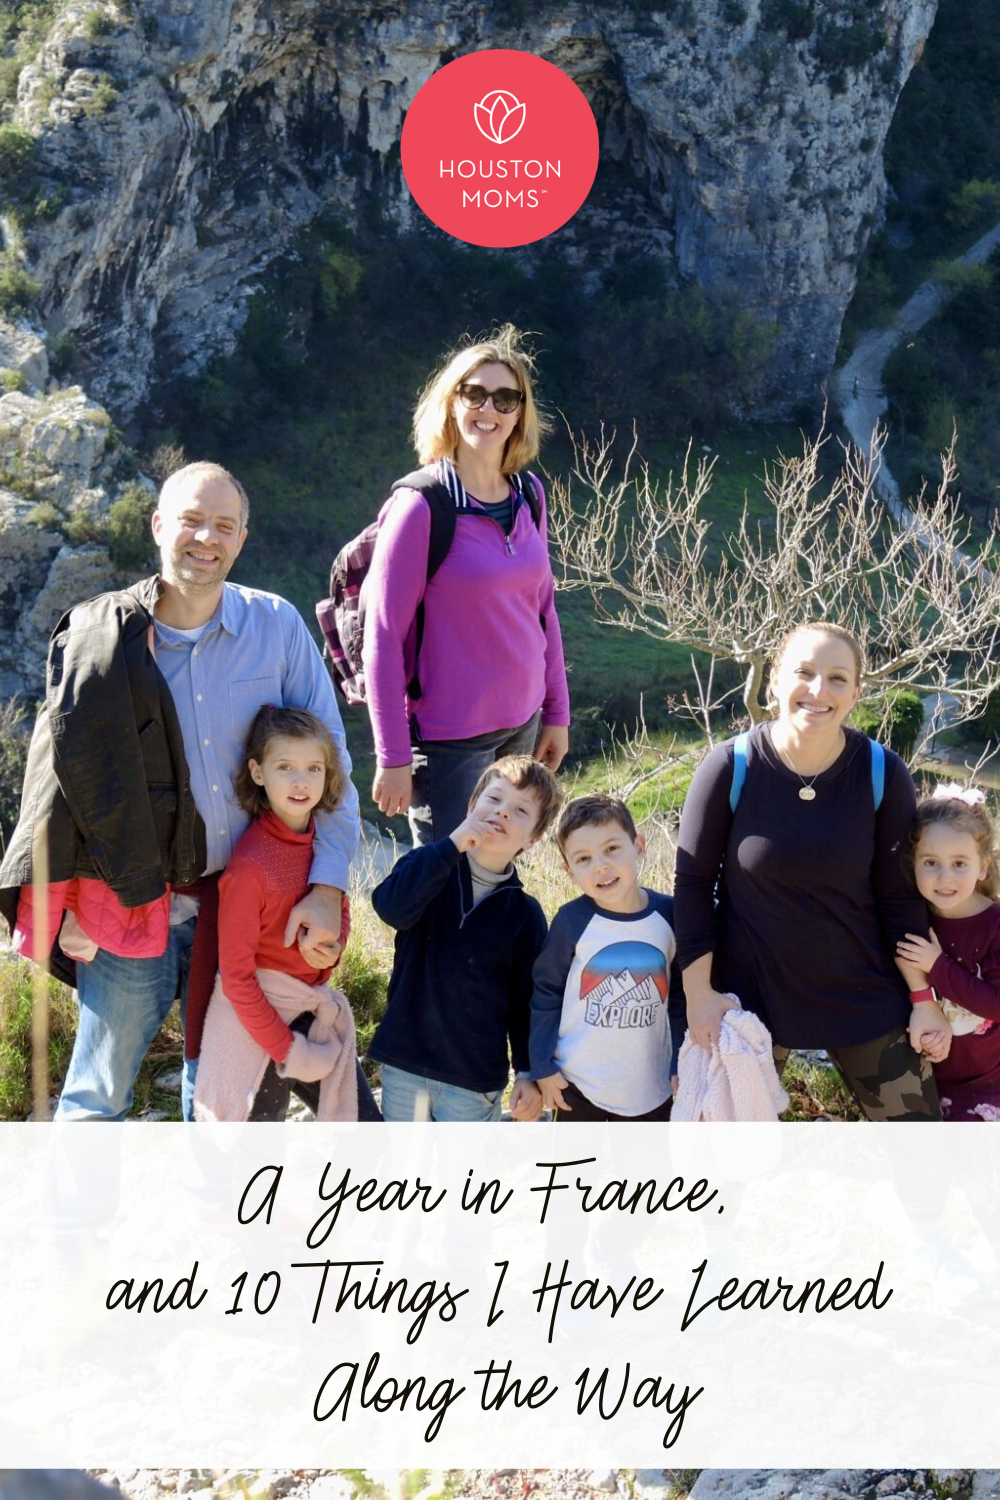 """Houston Moms """"A Year in France and 10 Things I Have Learned Along the Way"""" #houstonmoms #houstonmomsblog #momsaroundhouston"""